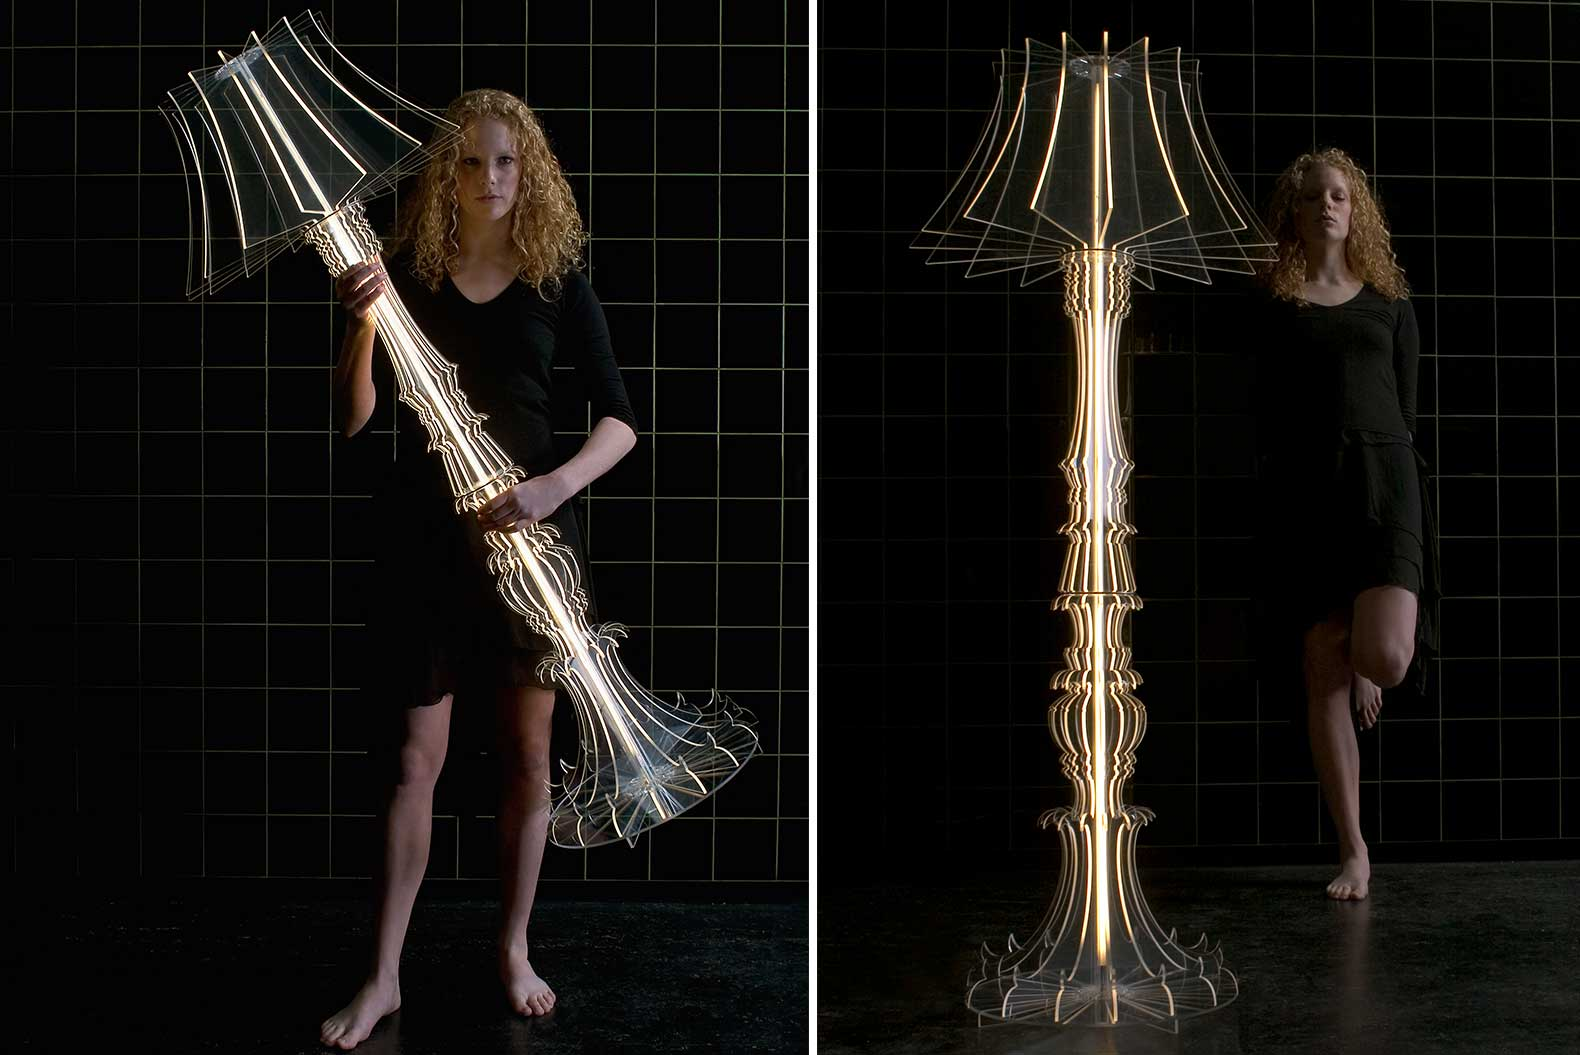 Sander Mulder, ghostly lamp, Josephine floor lamp, transparent acrylic, acrylic furniture, color filters, glowing design,